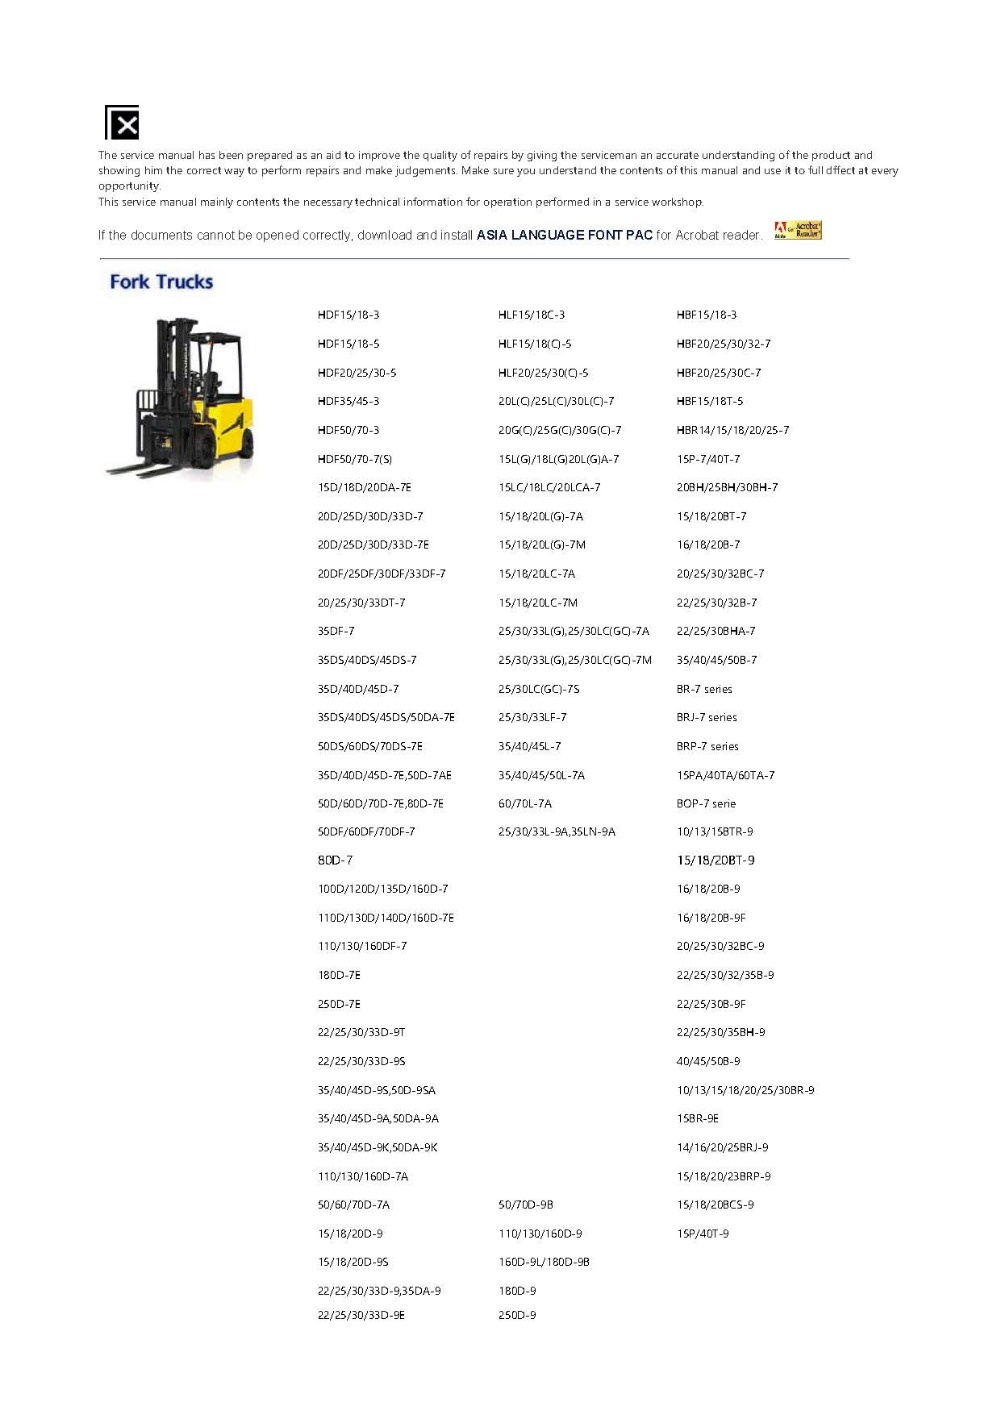 Forklift Trucks and Engine Service Manuals and Workshop Manuals for Hyundai  2019